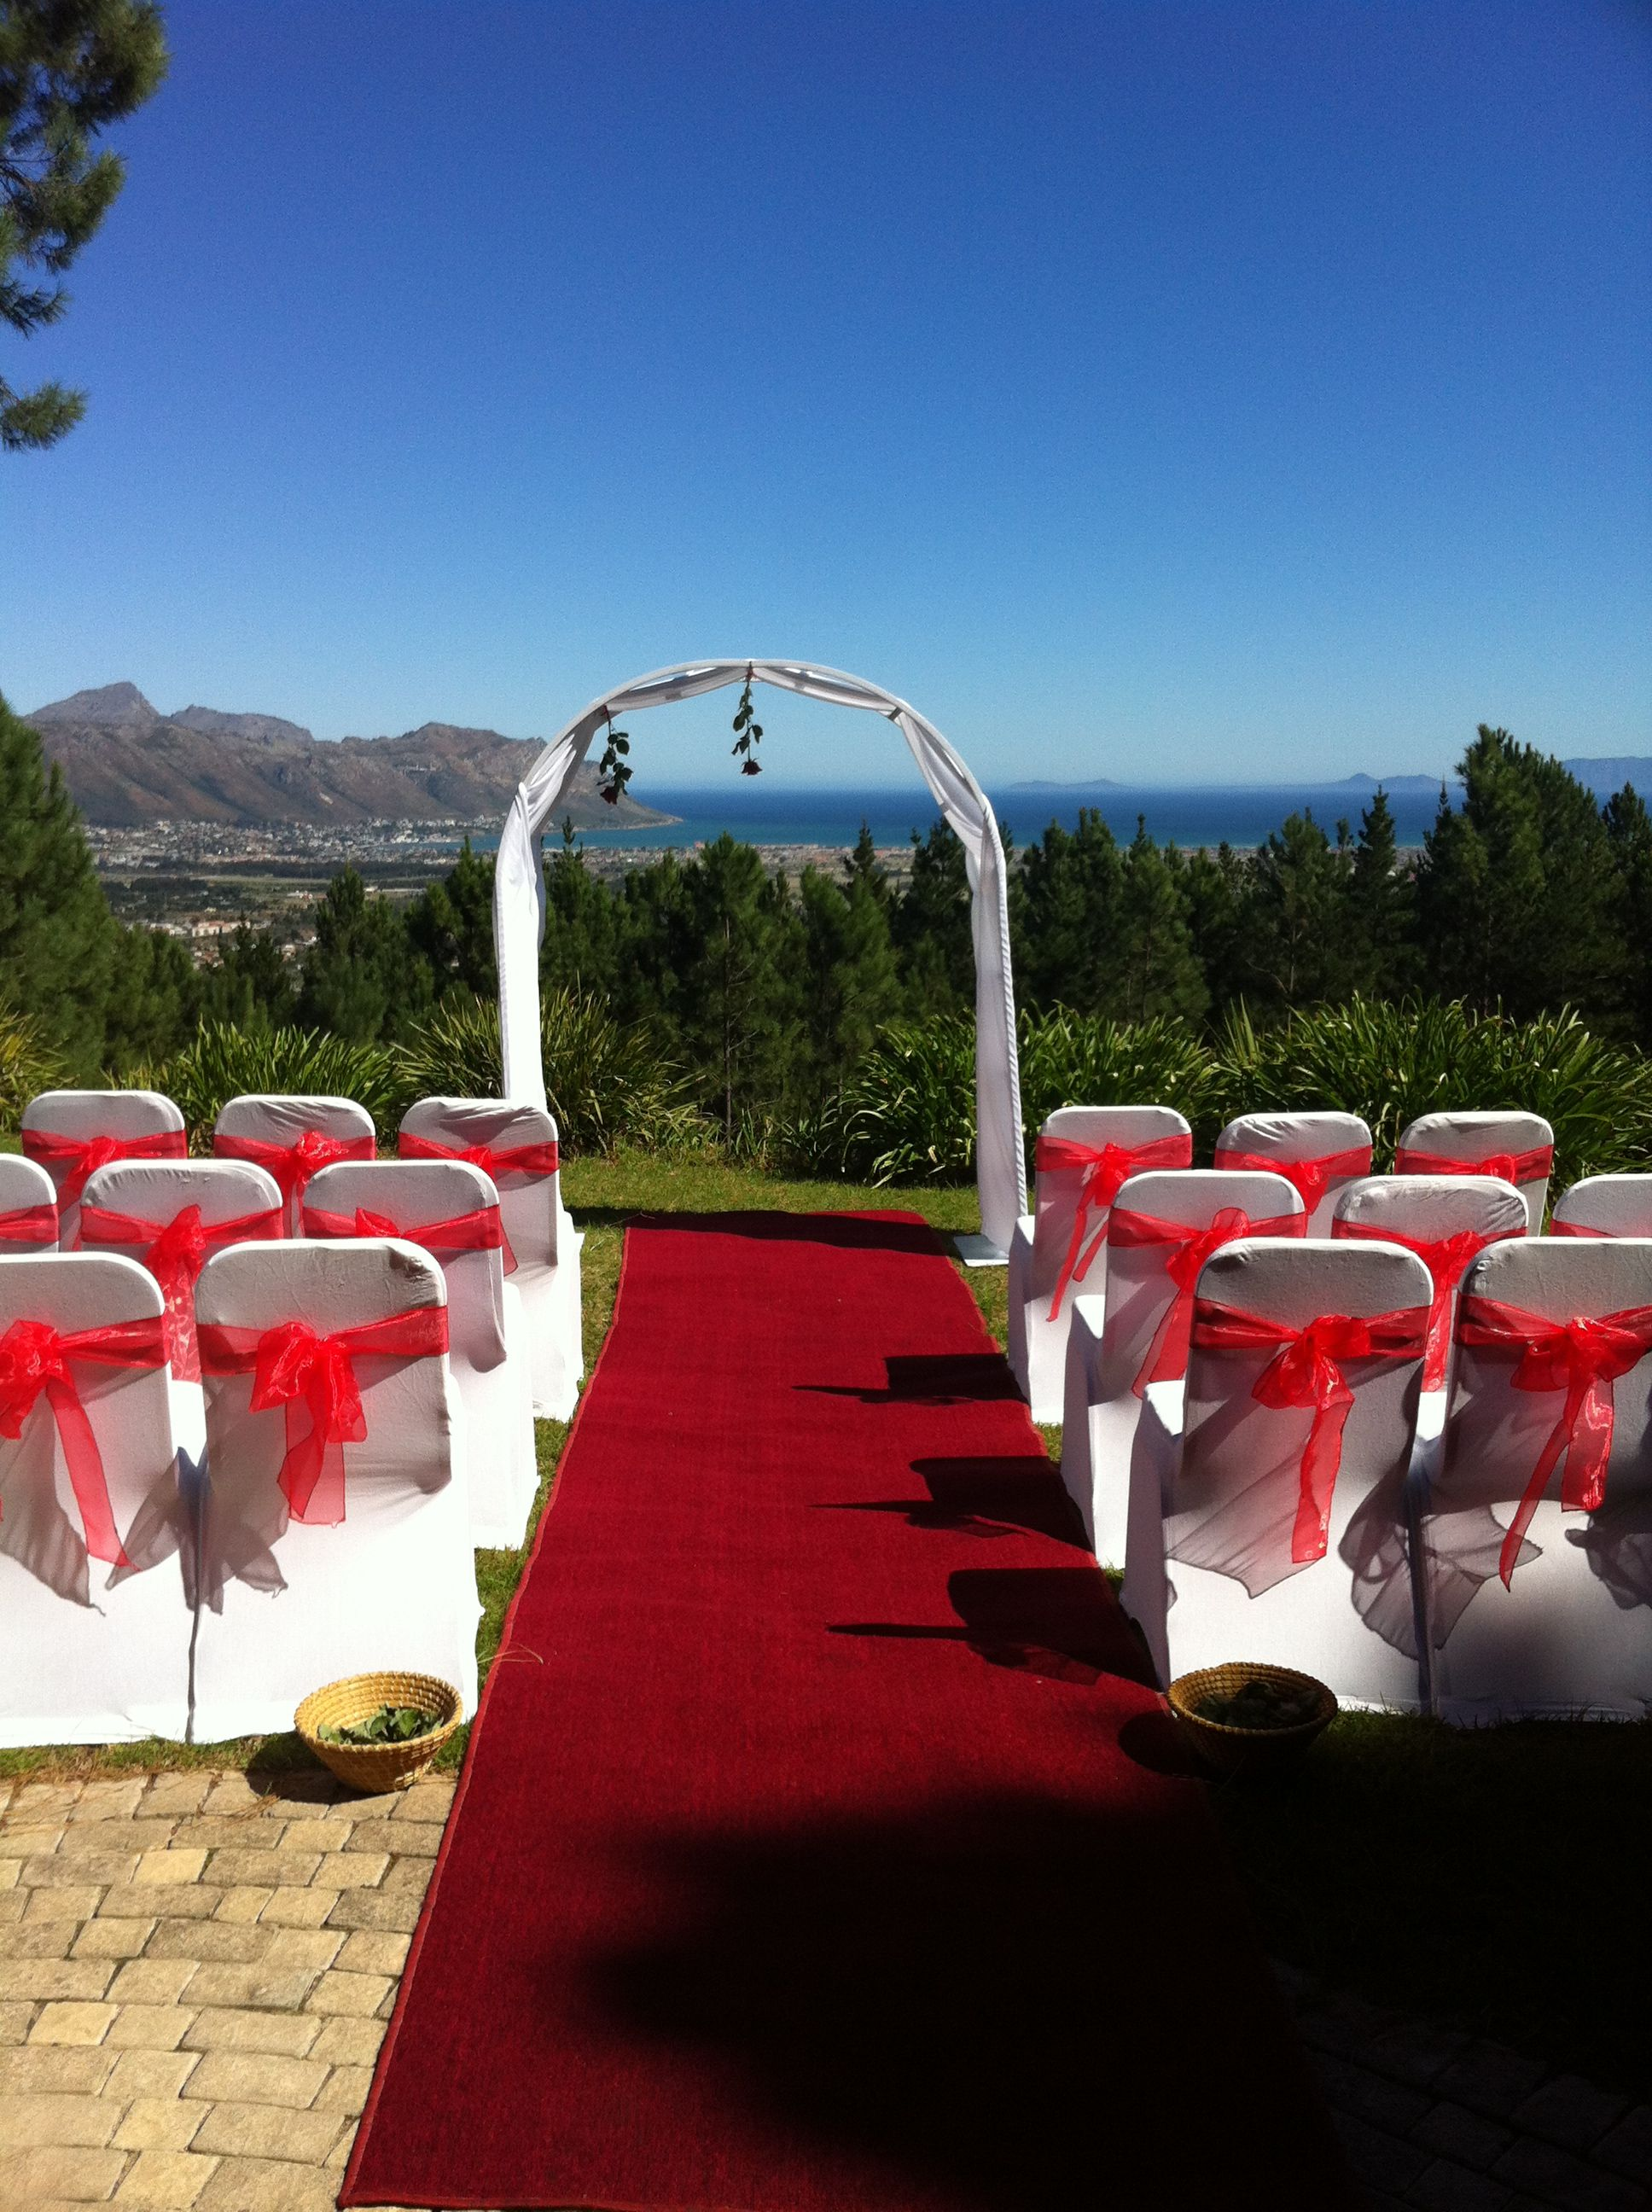 Ceremony Neil Beukes Small Wedding Getting Married Ceremony